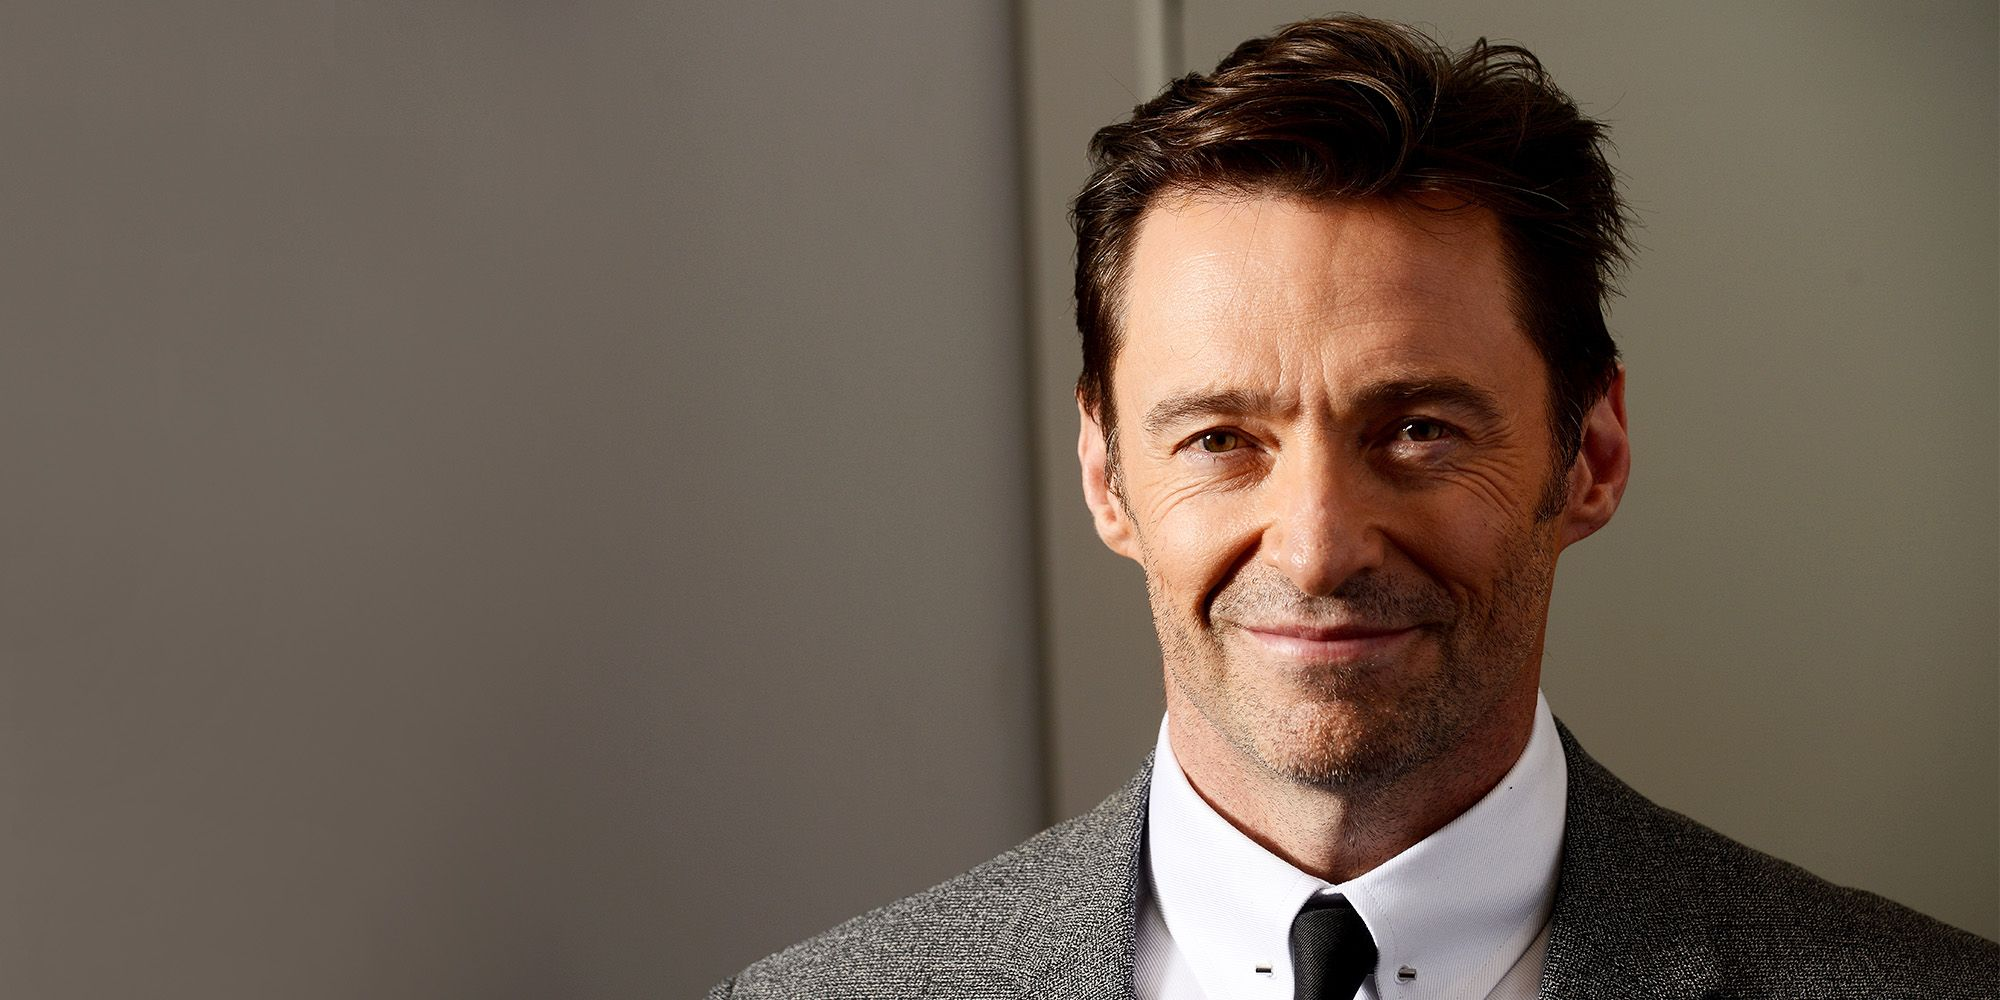 Exercises that keep Hugh Jackman in perfect shape